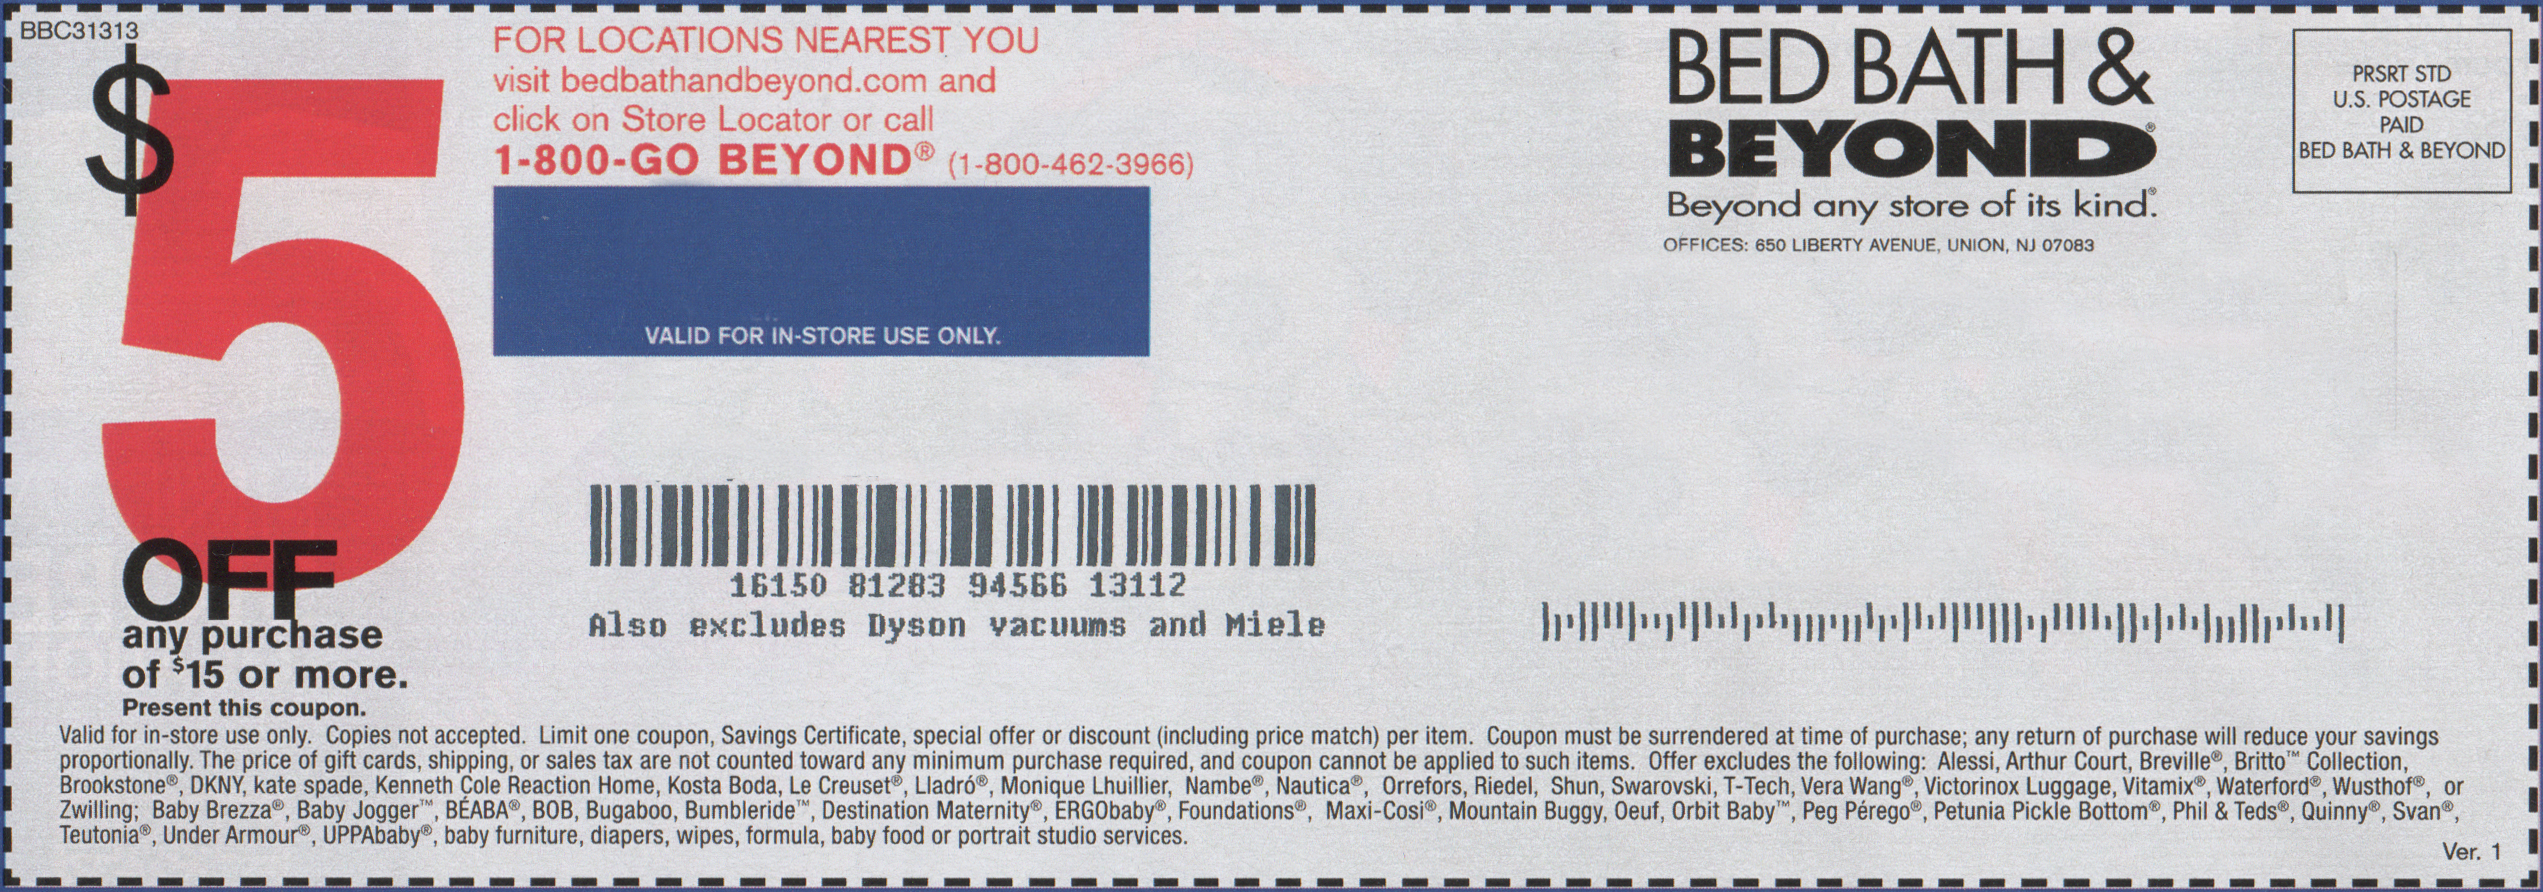 Bed Bath Beyond Online Store Coupon